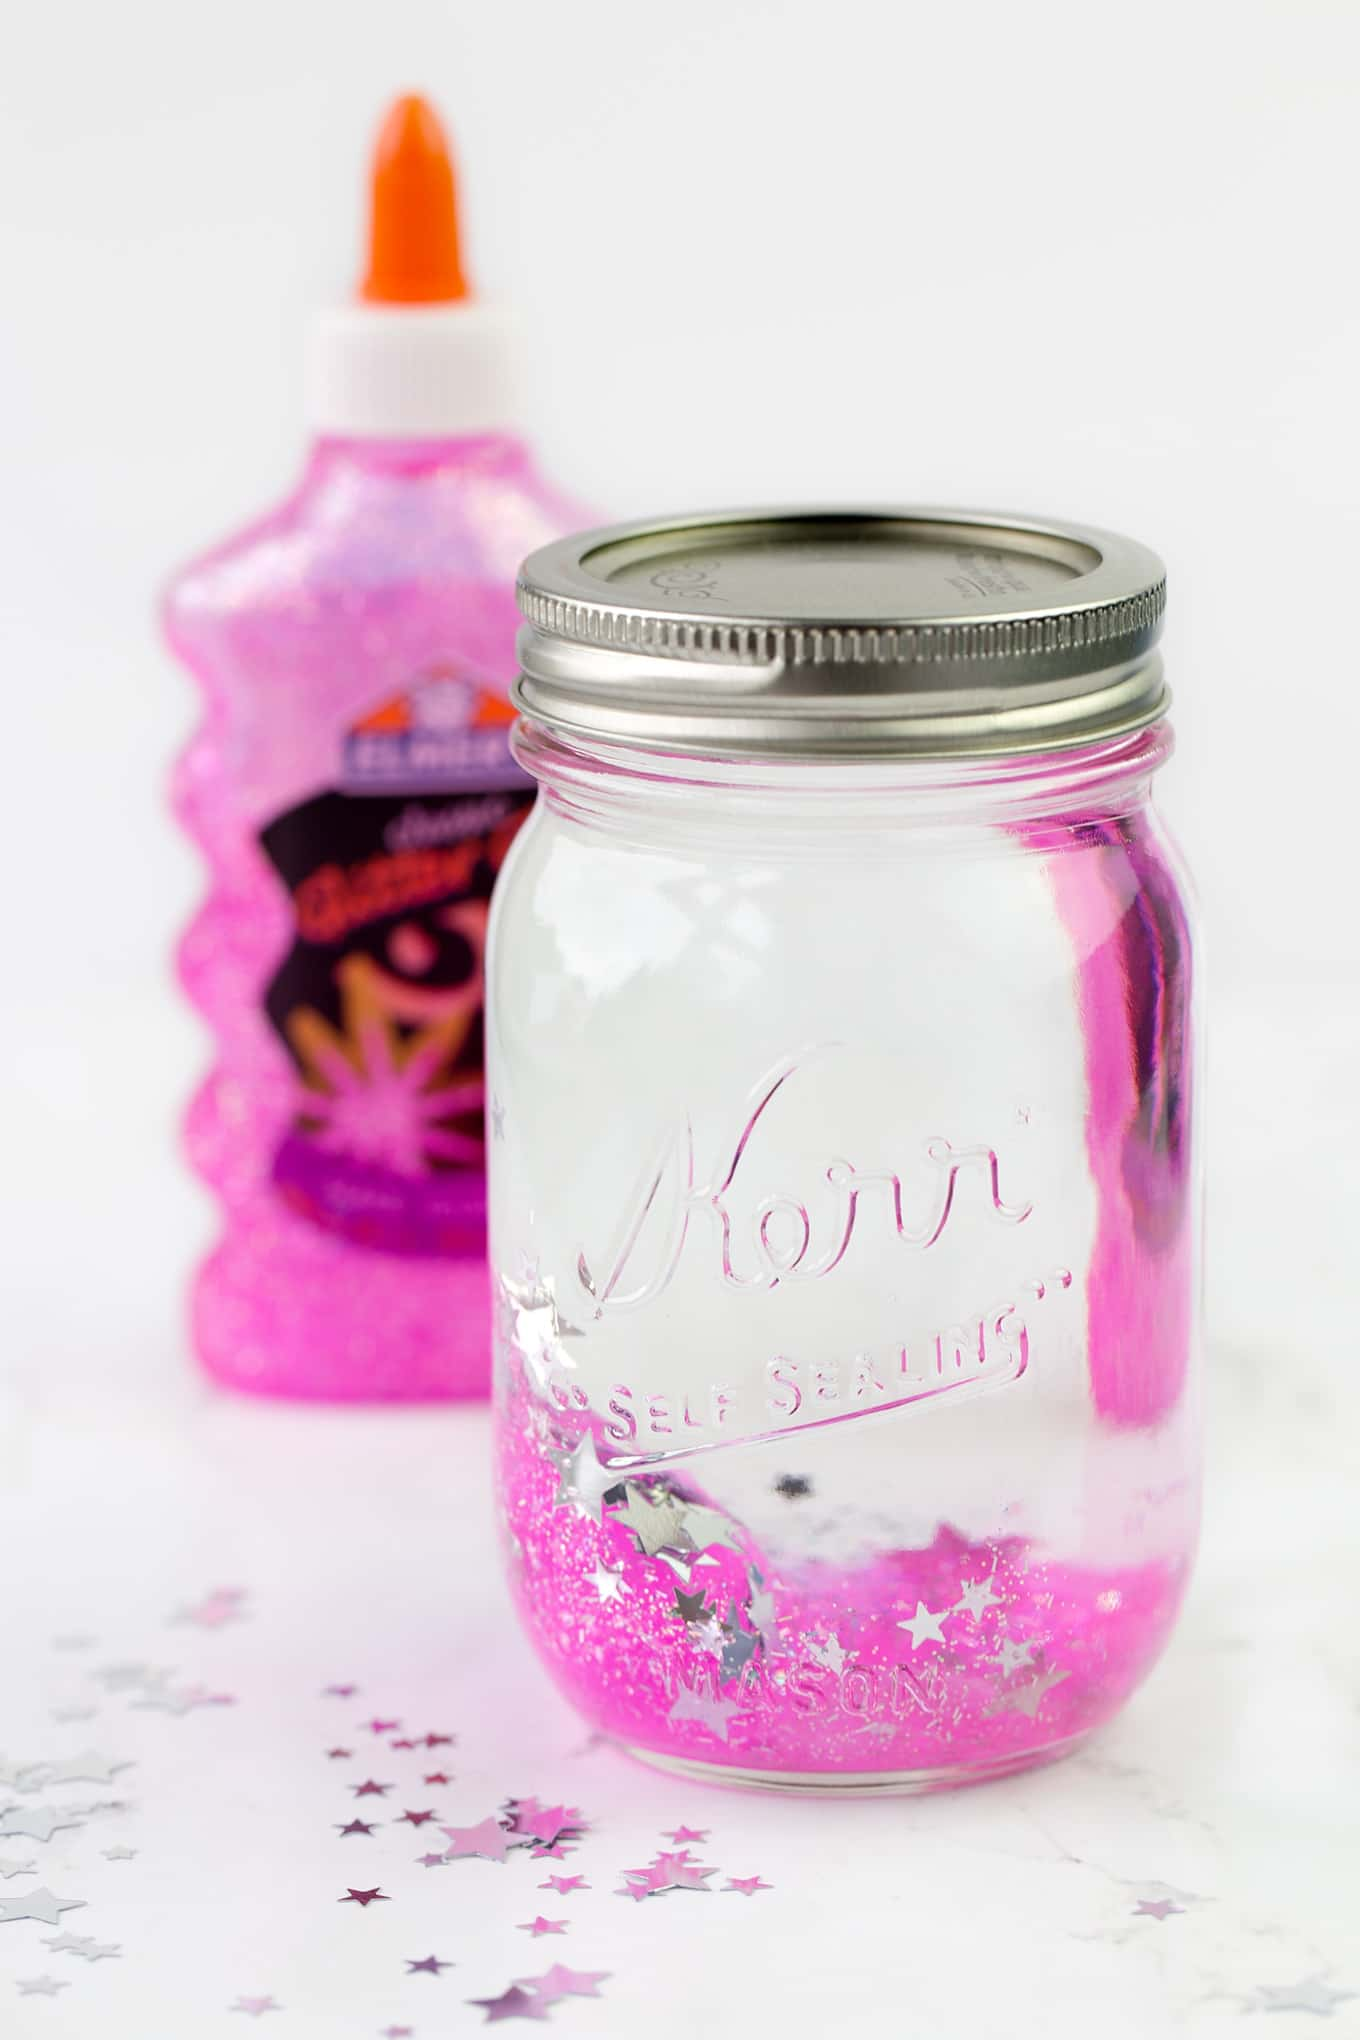 Mindfulness is an important skill for kids to develop. Learn how to make a glitter jar to promote mindfulness and calm in your home or classroom.